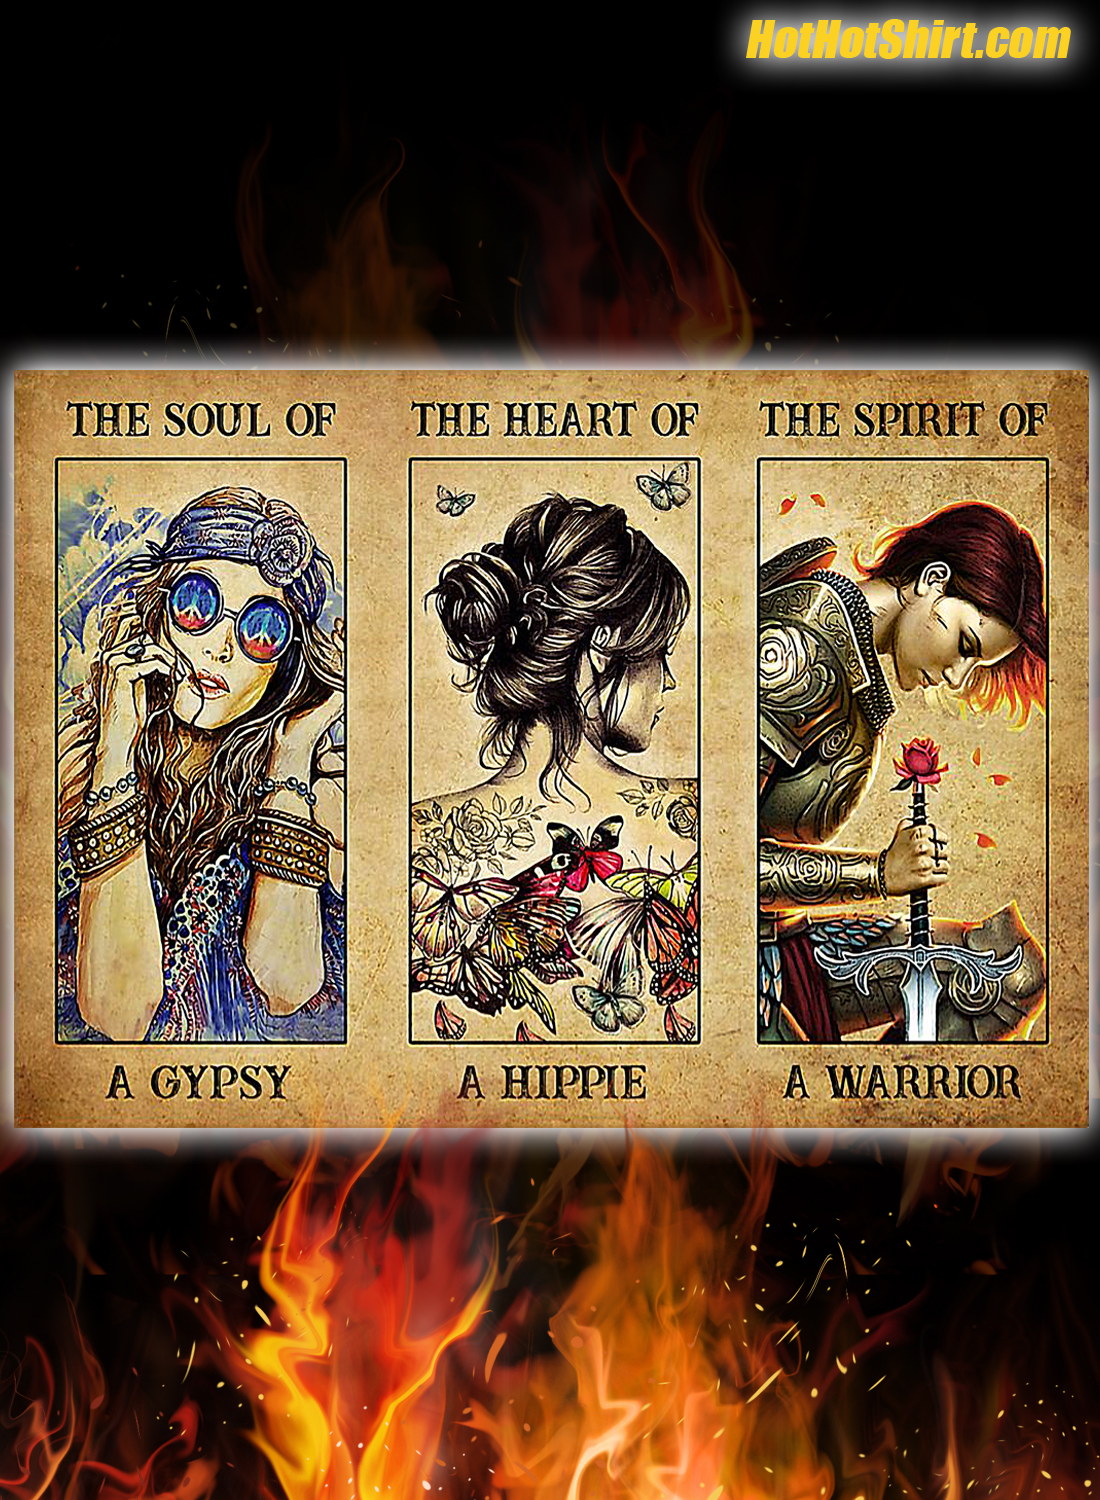 The soul of a gypsy the heart of a hippie the spirit of a warrior poster